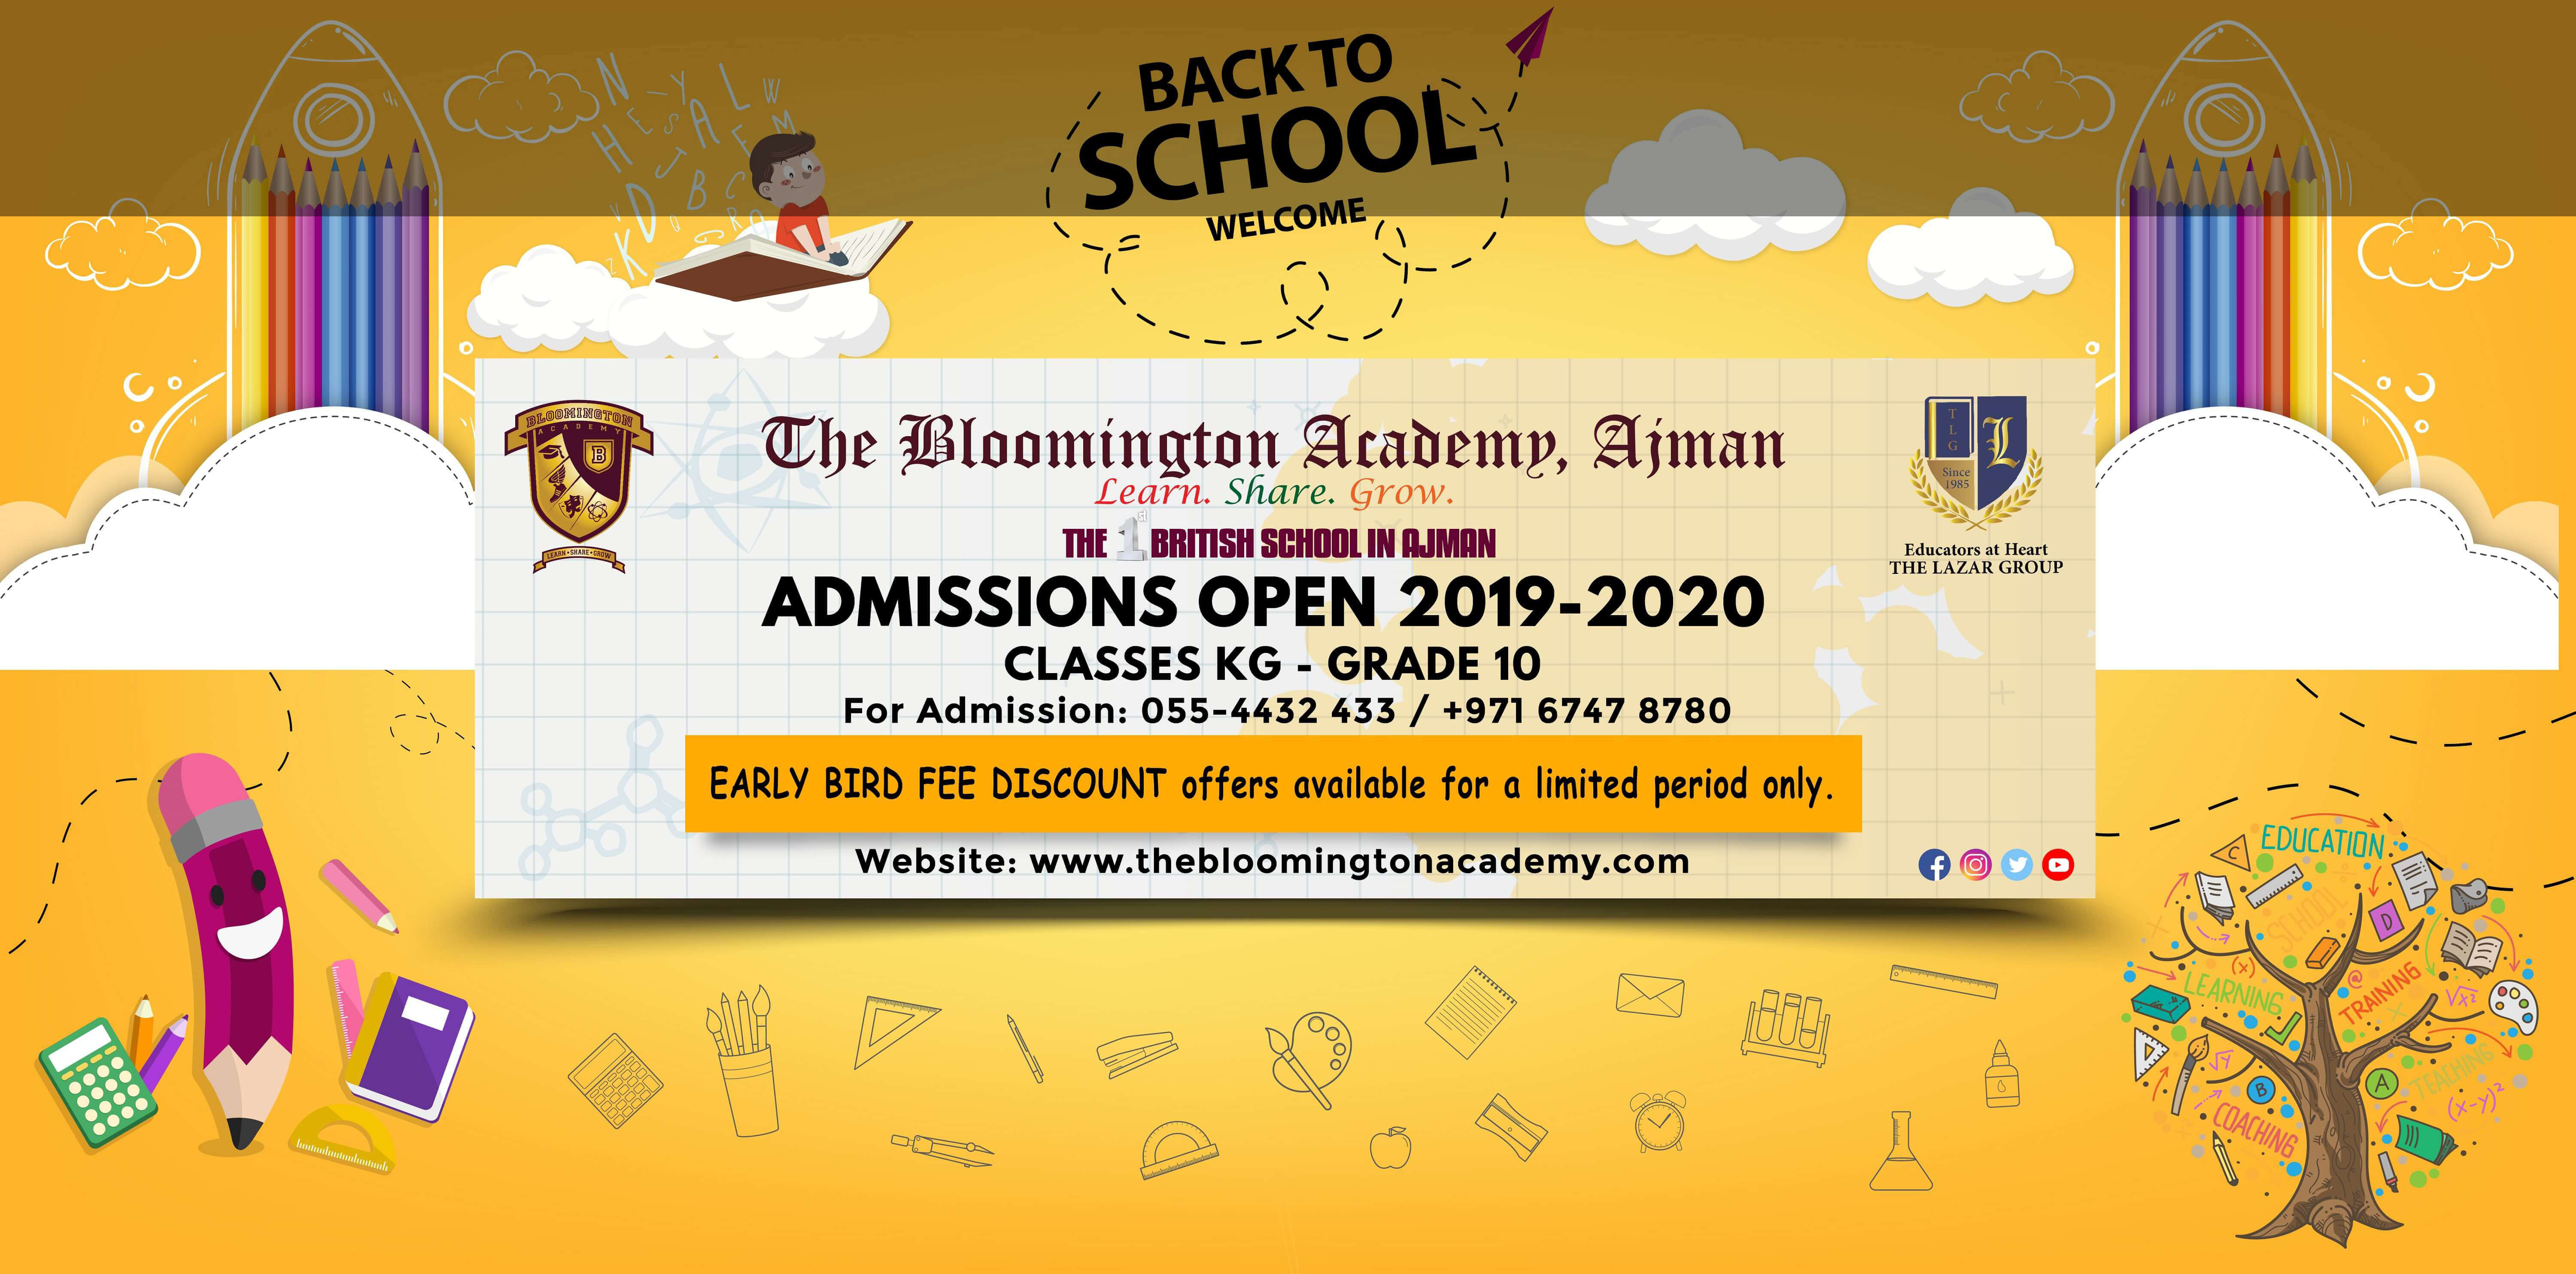 Bloomington Academy Admission Open Banner